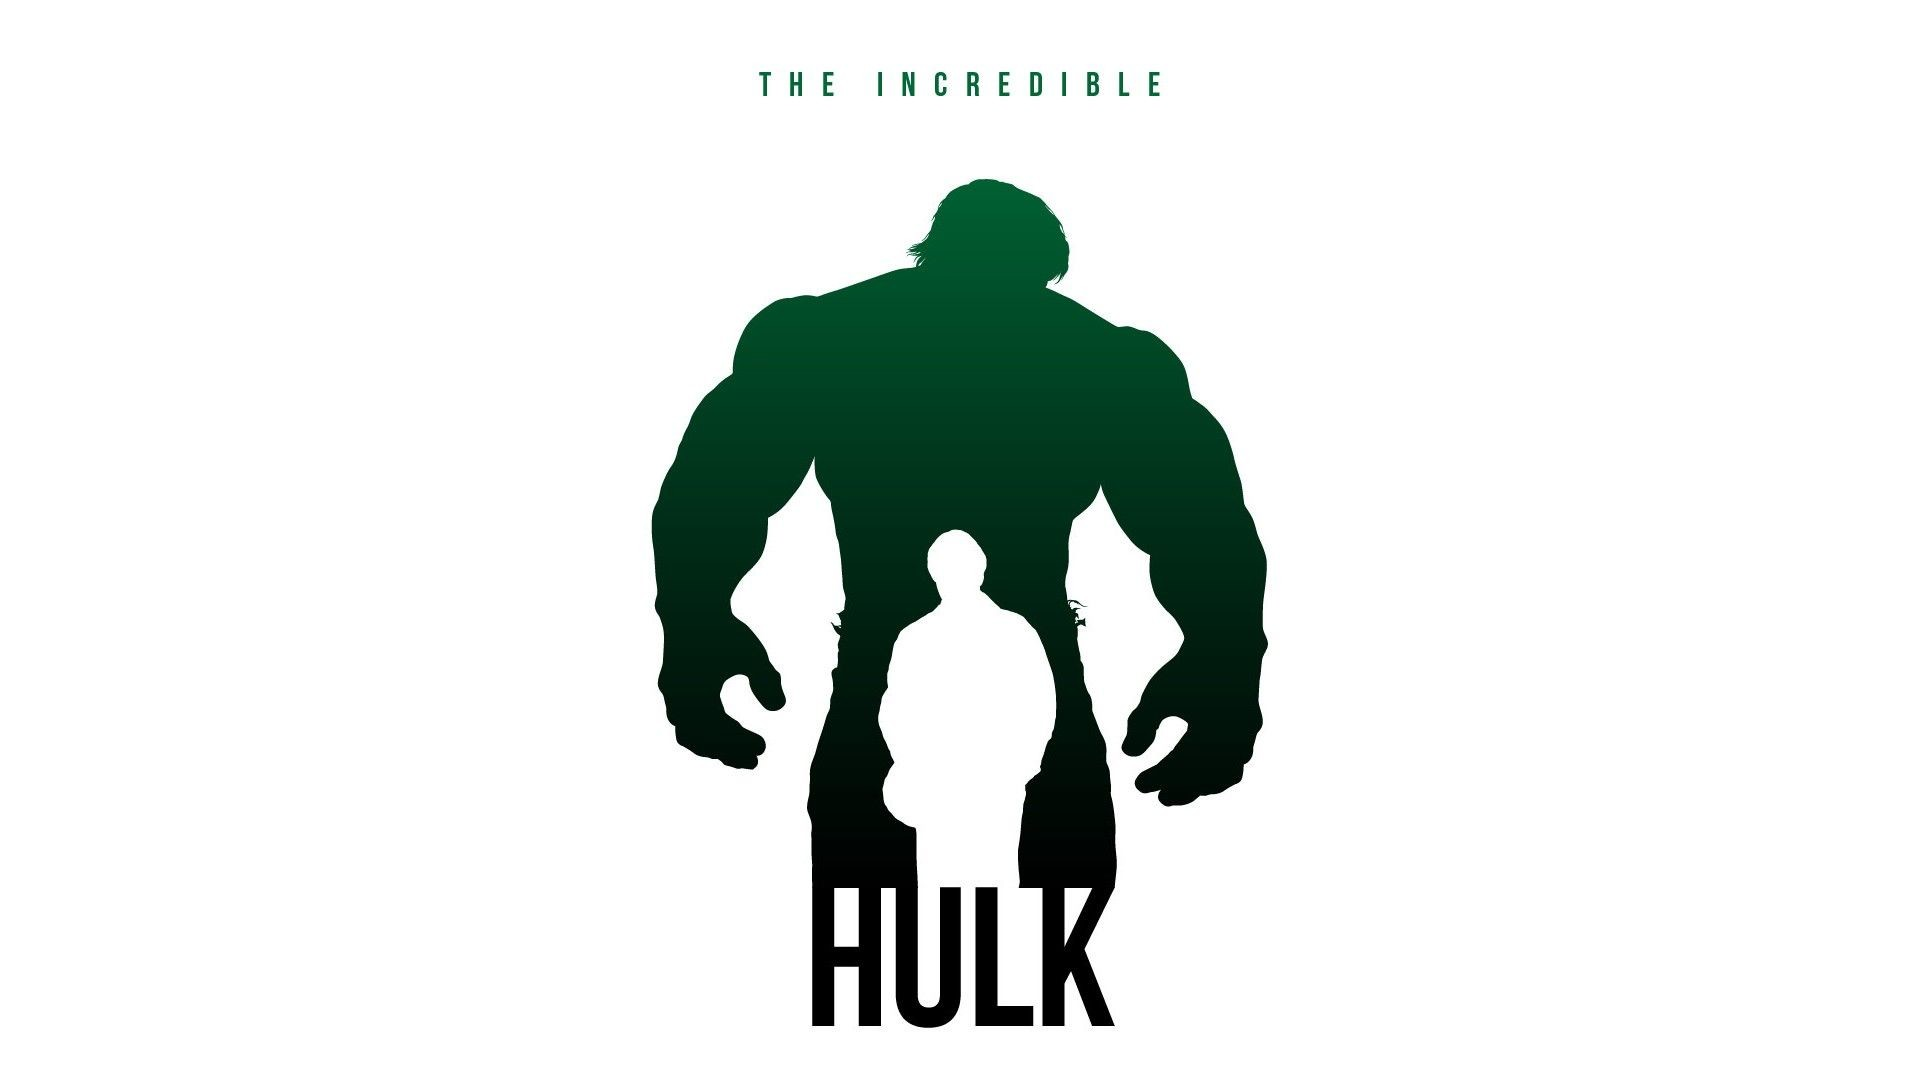 Hulk Widescreen Background Wallpapers 4548 – HD Wallpapers Site